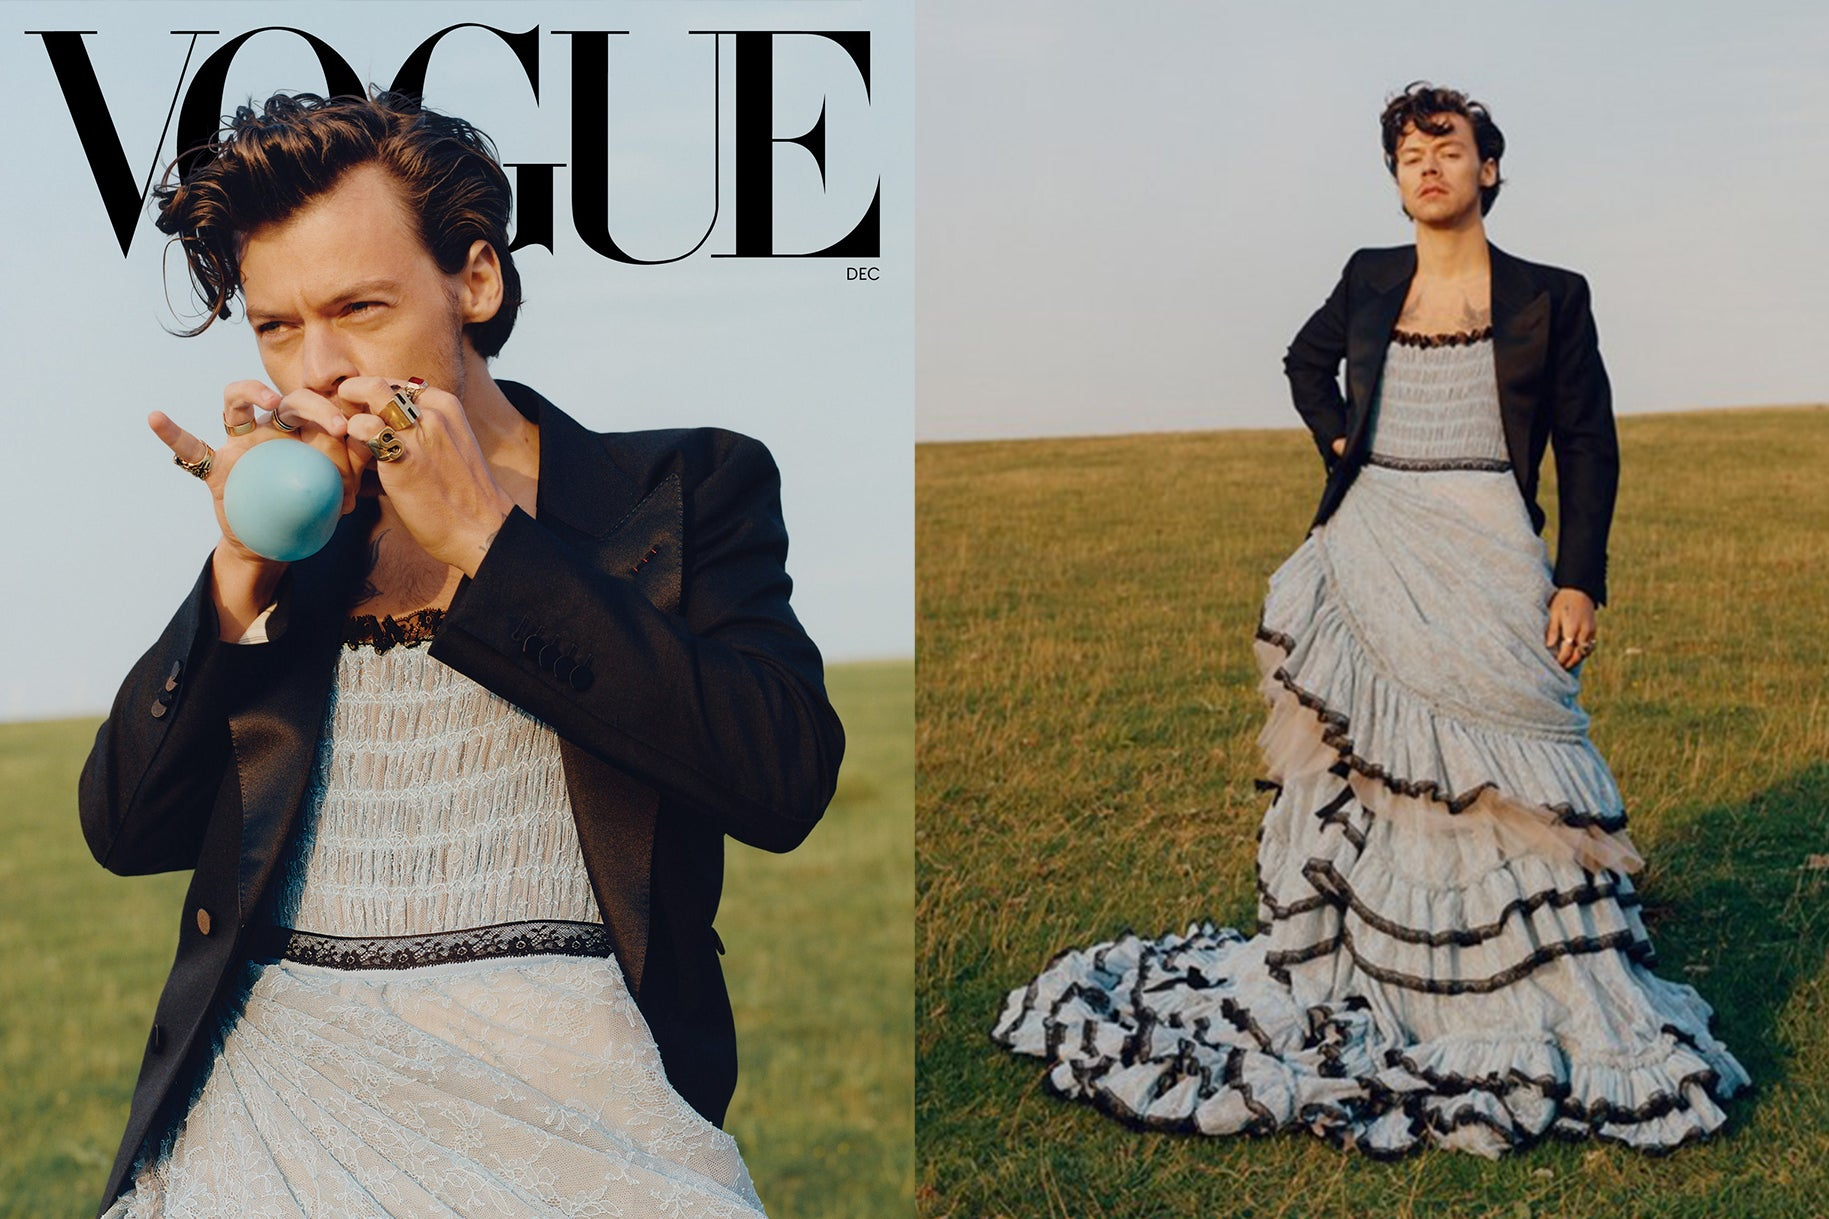 Harry Styles Vogue Cover December 2020 | Photography Tyler Mitchell